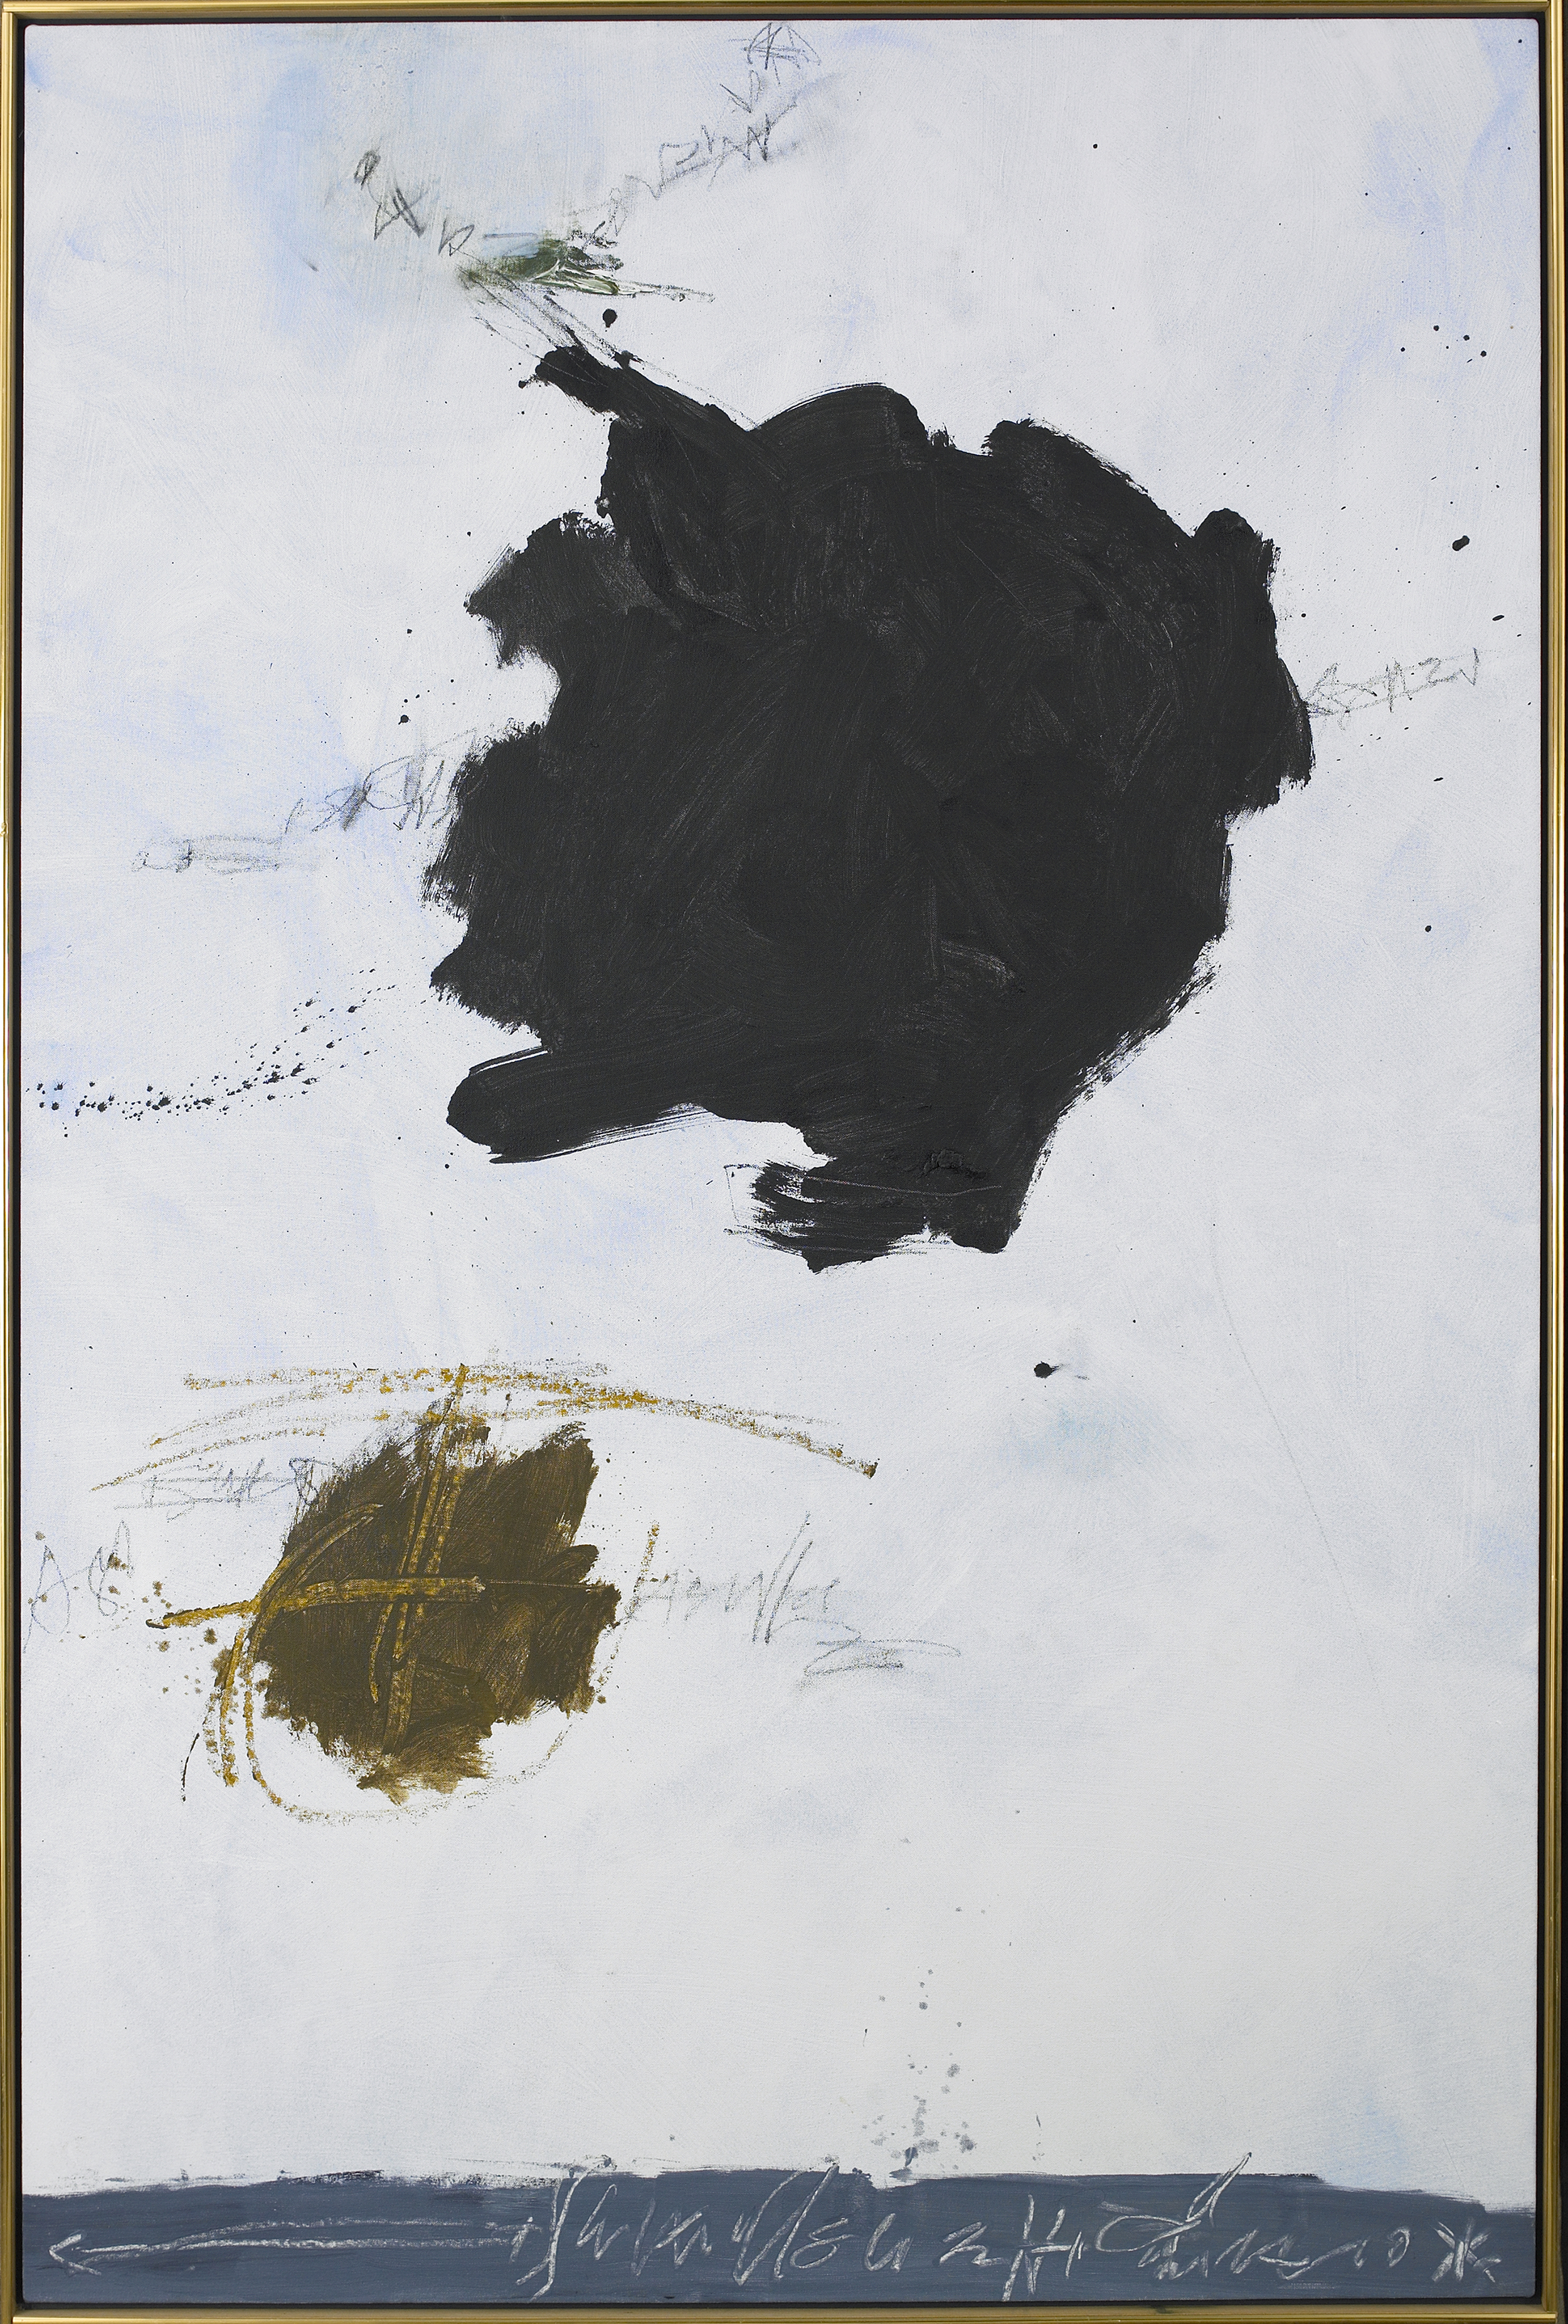 Moors-Moon,   1993, Oil on canvas, 59 3/4 x 39 1/2 inches